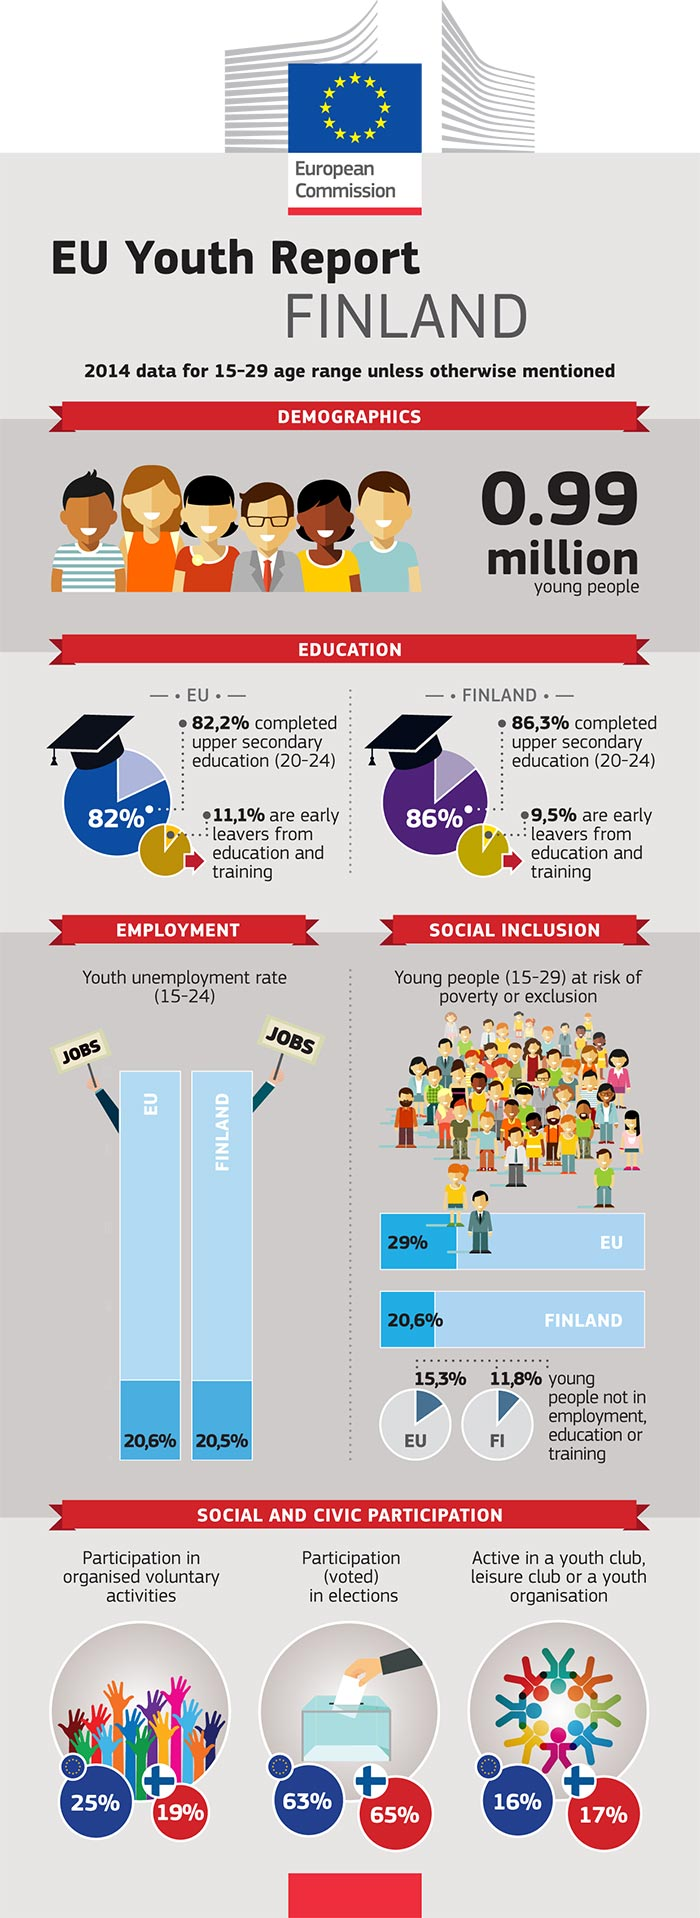 EU Youth Report infographic: Finland